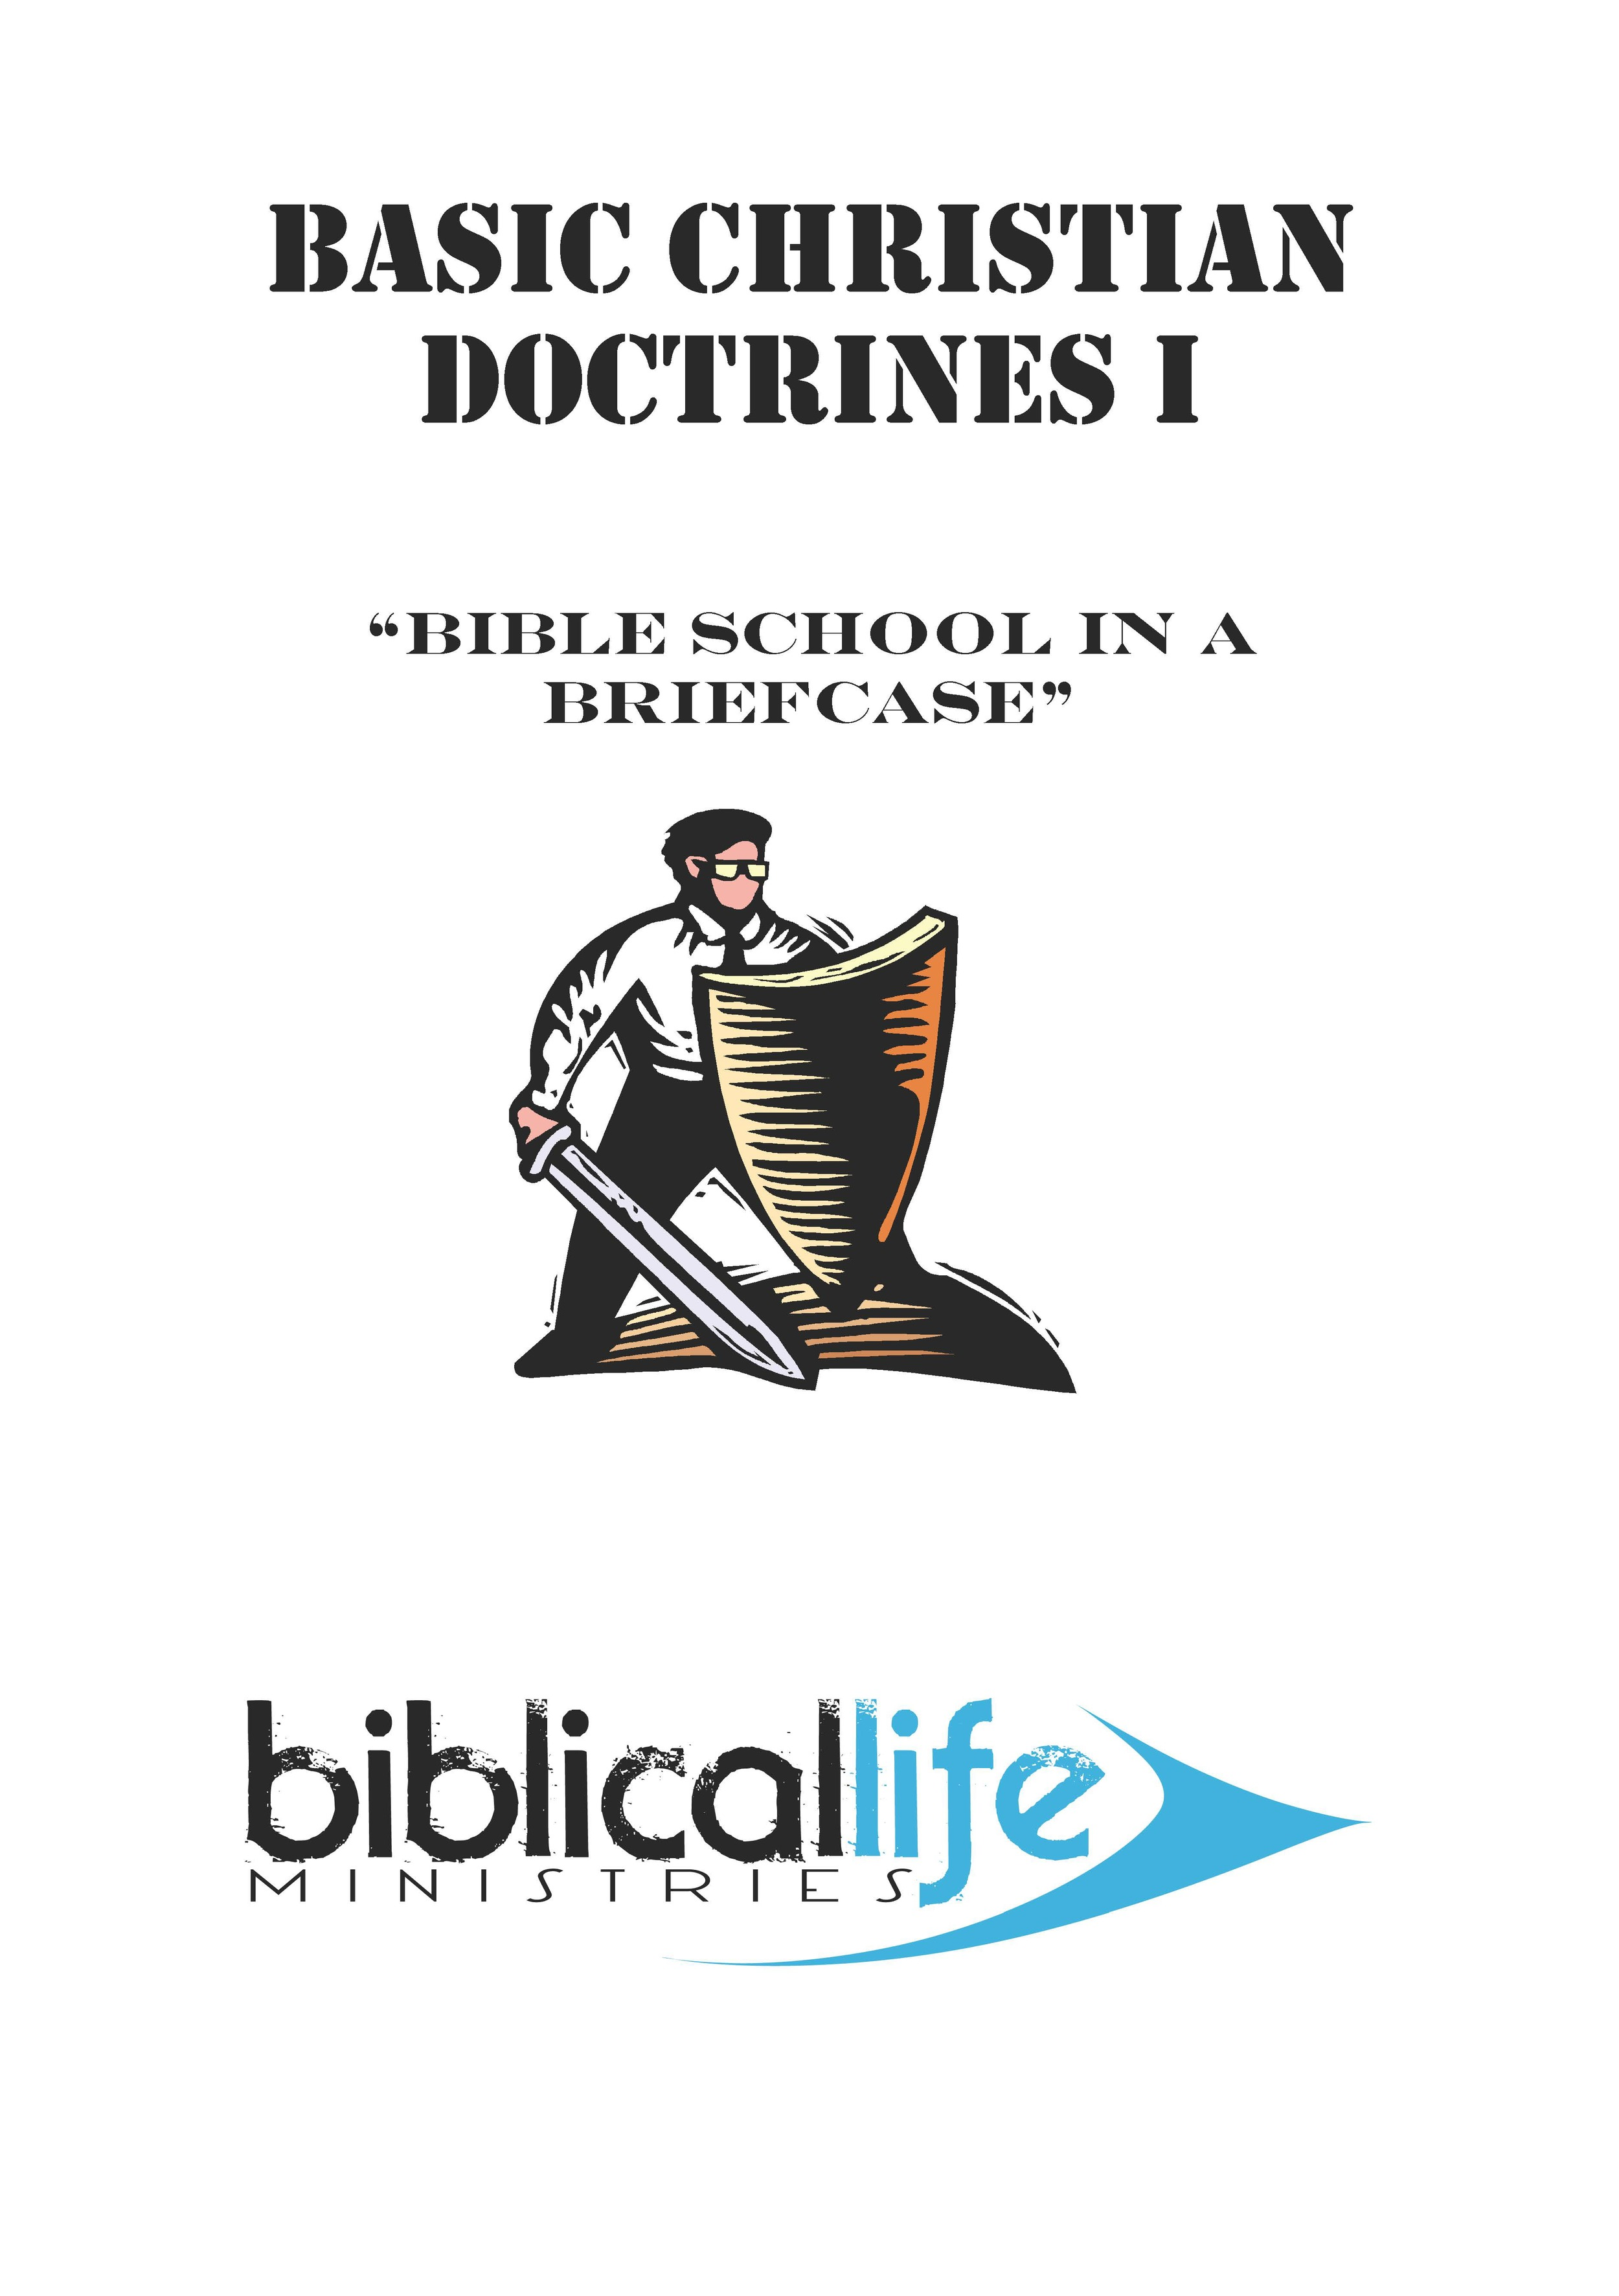 Basic Christian Doctrines I  : The Bible, The Character of God, Sin/Repentance, Salvation,  Water Baptism, Baptism in the Holy Spirit, The Importance of Prayer. 37 page manual.